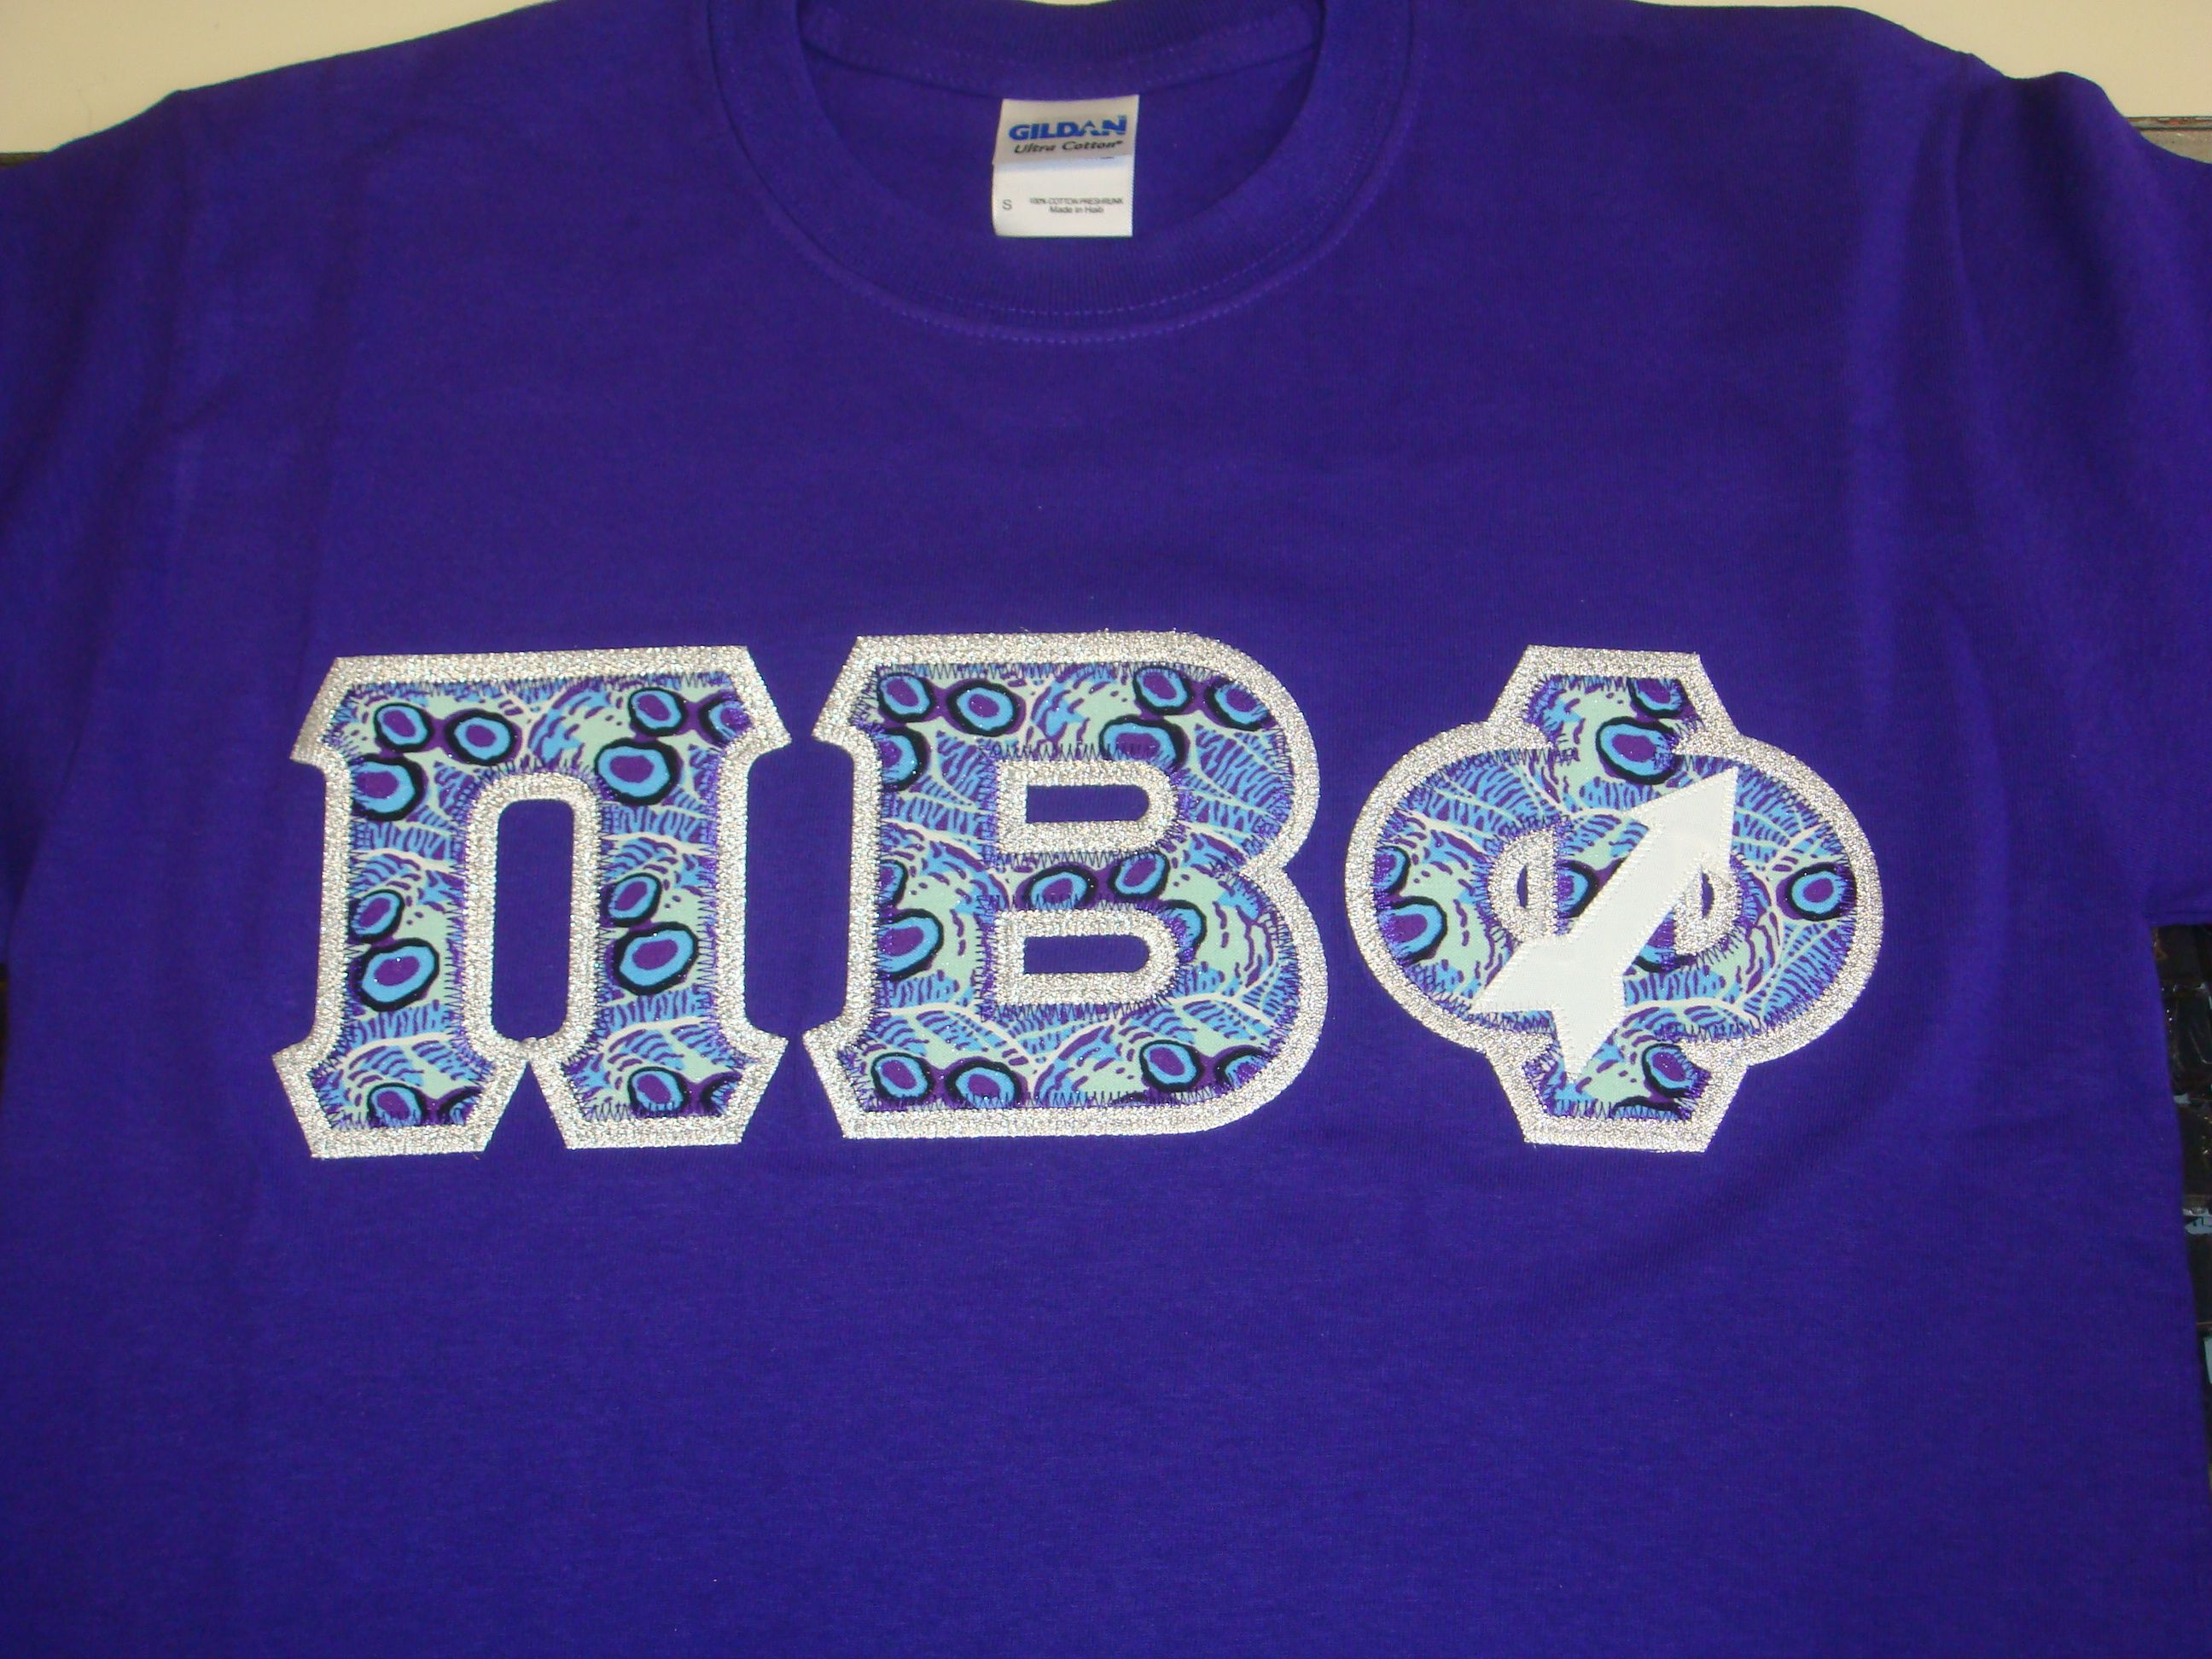 pi beta phi letter shirt with arrow